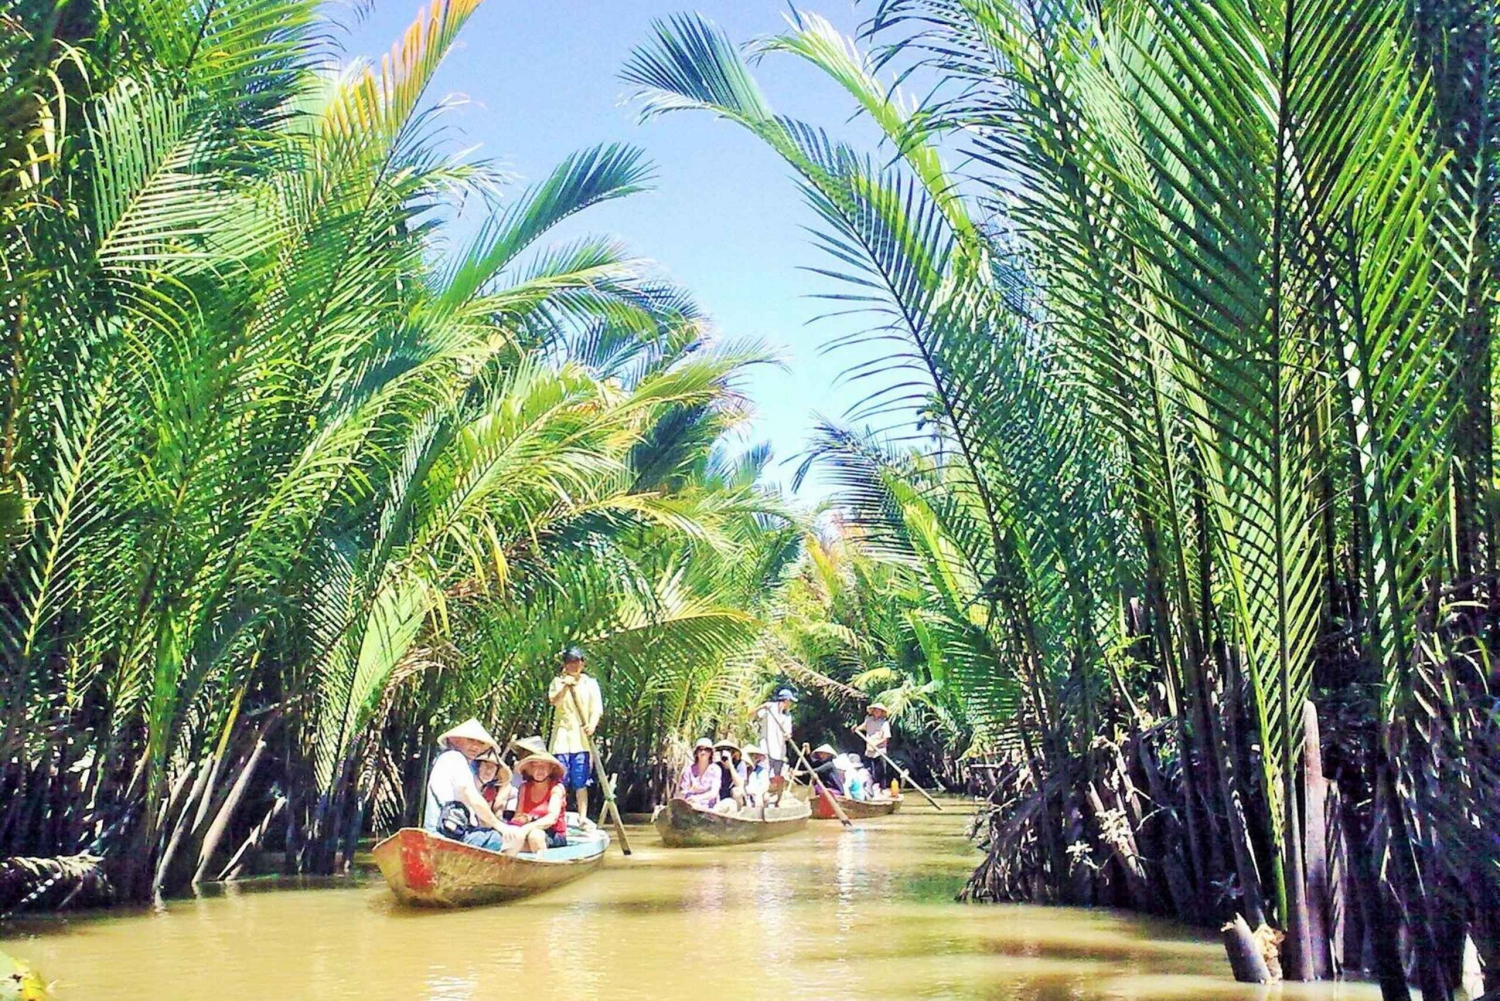 Mekong Discovery: Small Group Tour from Ho Chi Minh City